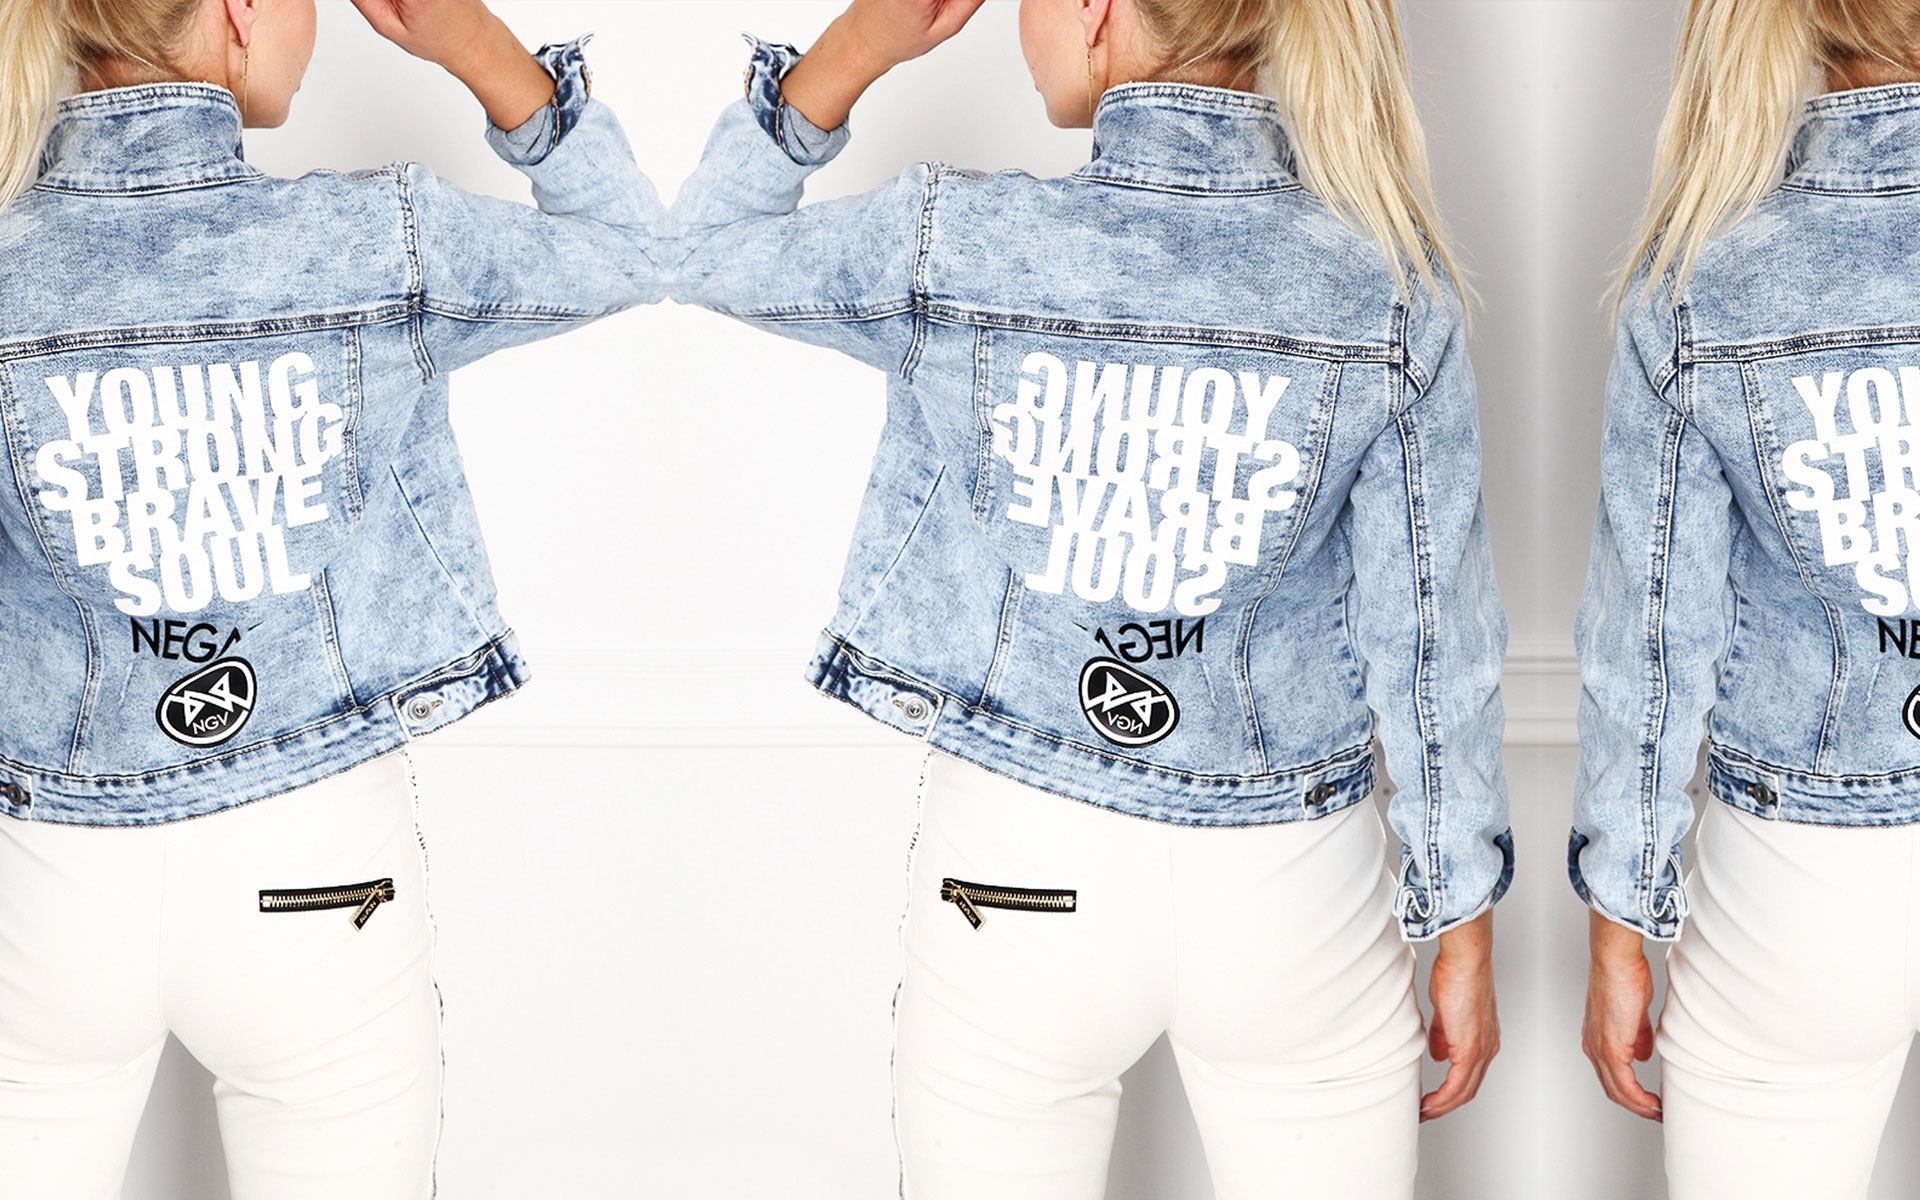 Young, Strong, Brave Soul Jacket